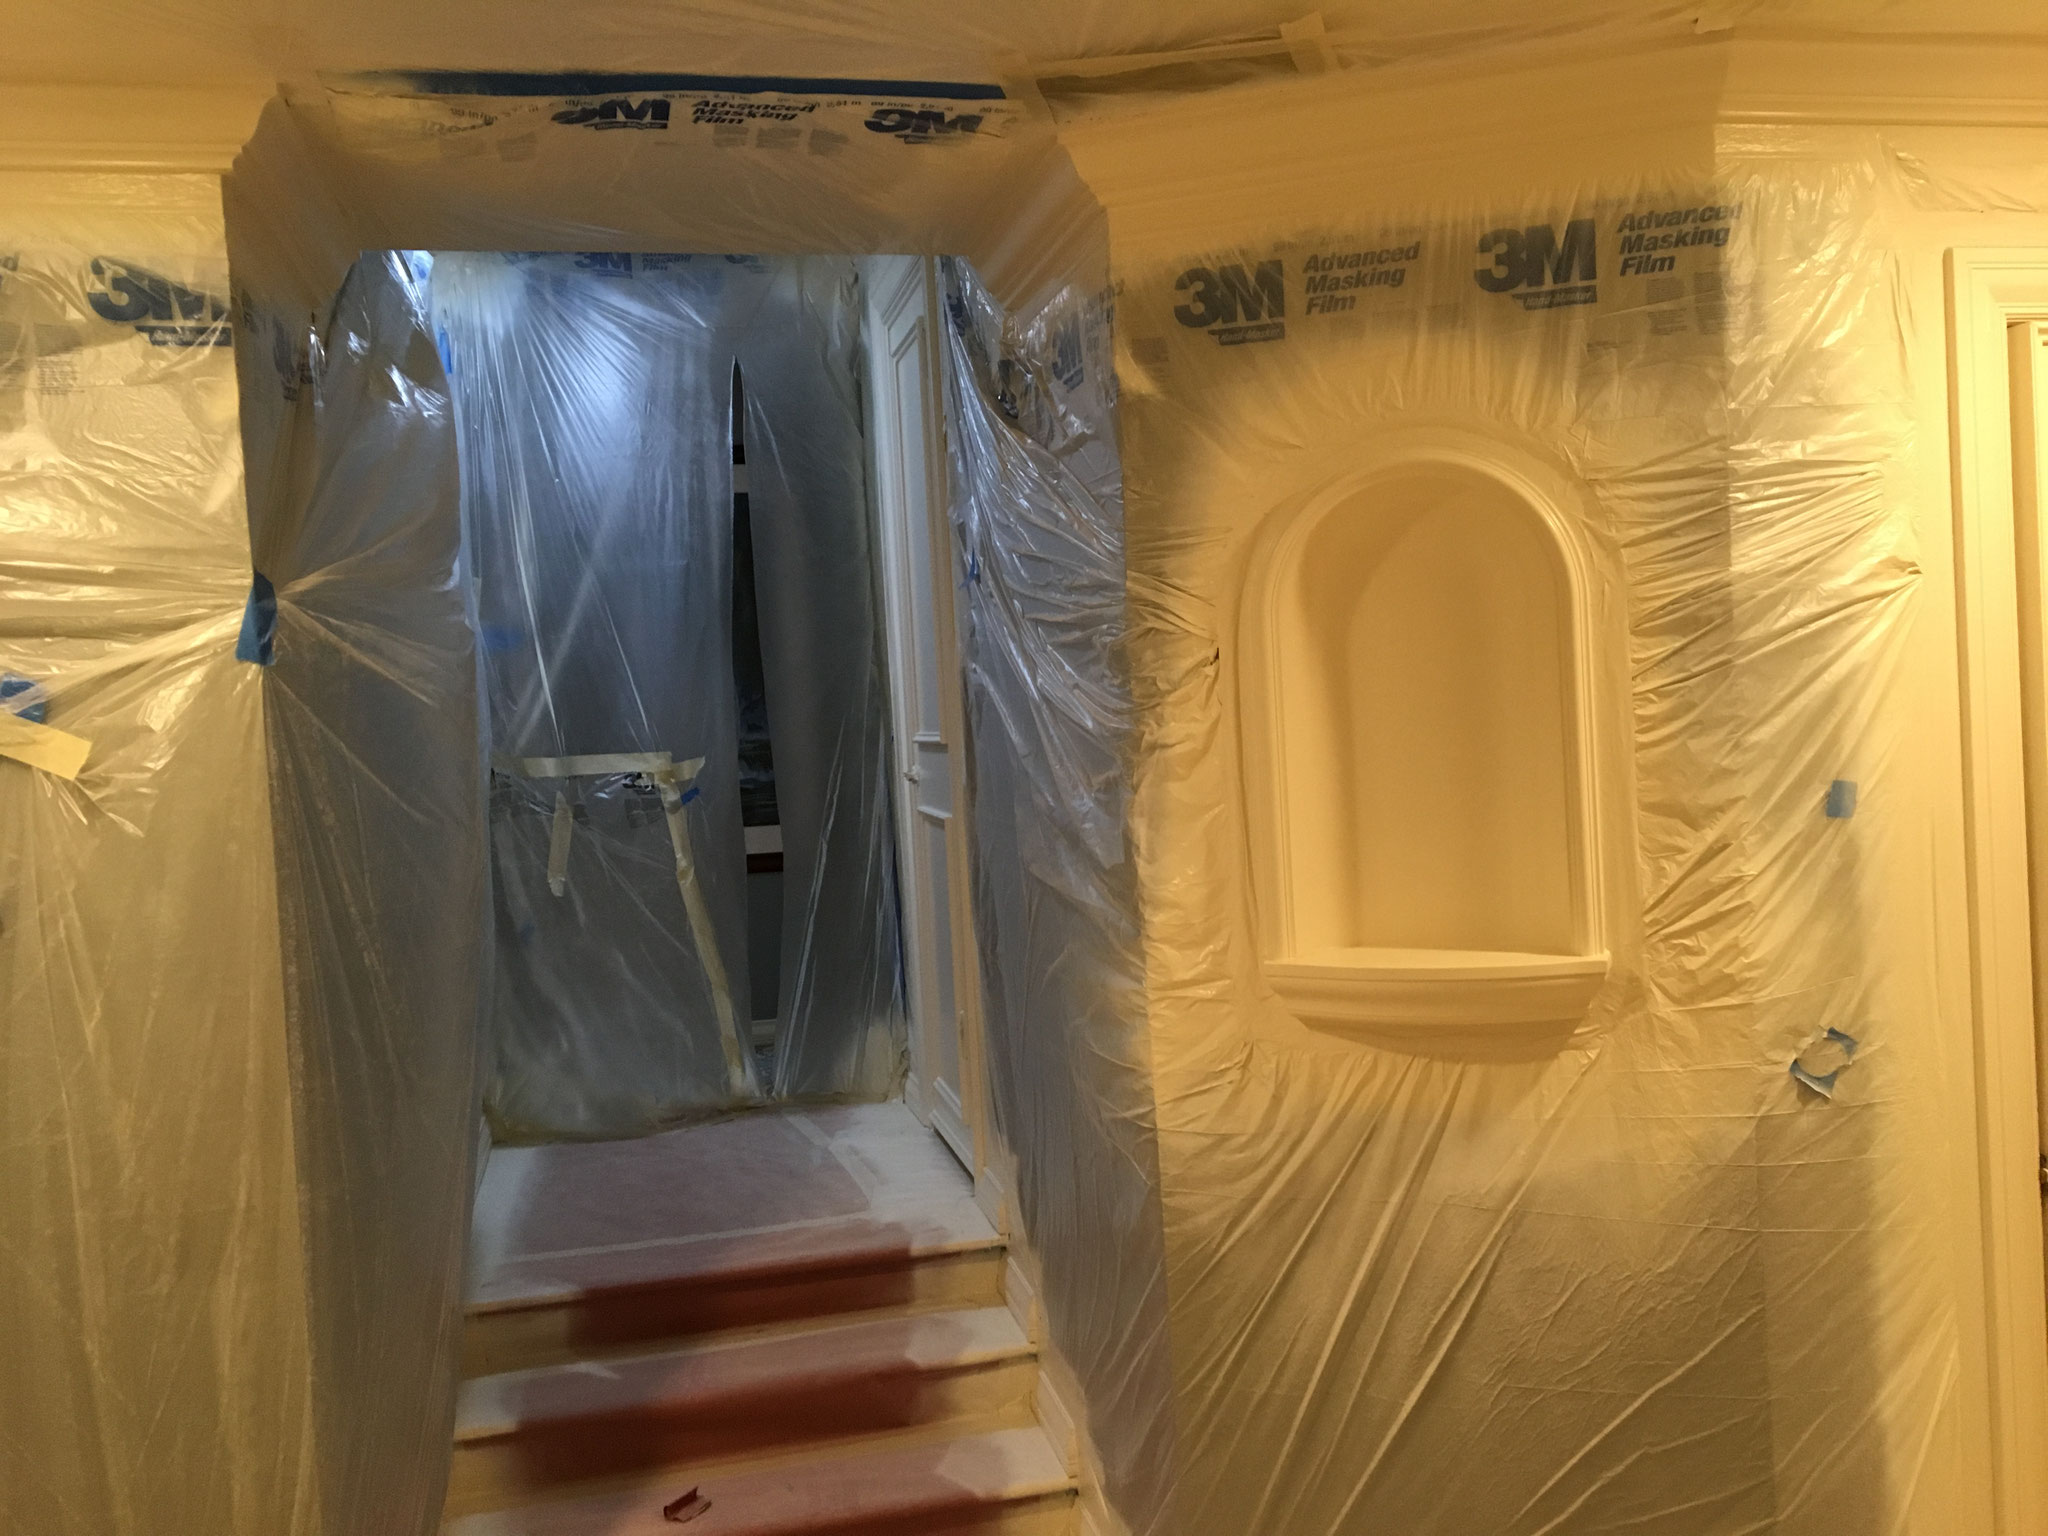 Just the white woodwork gets sprayed.